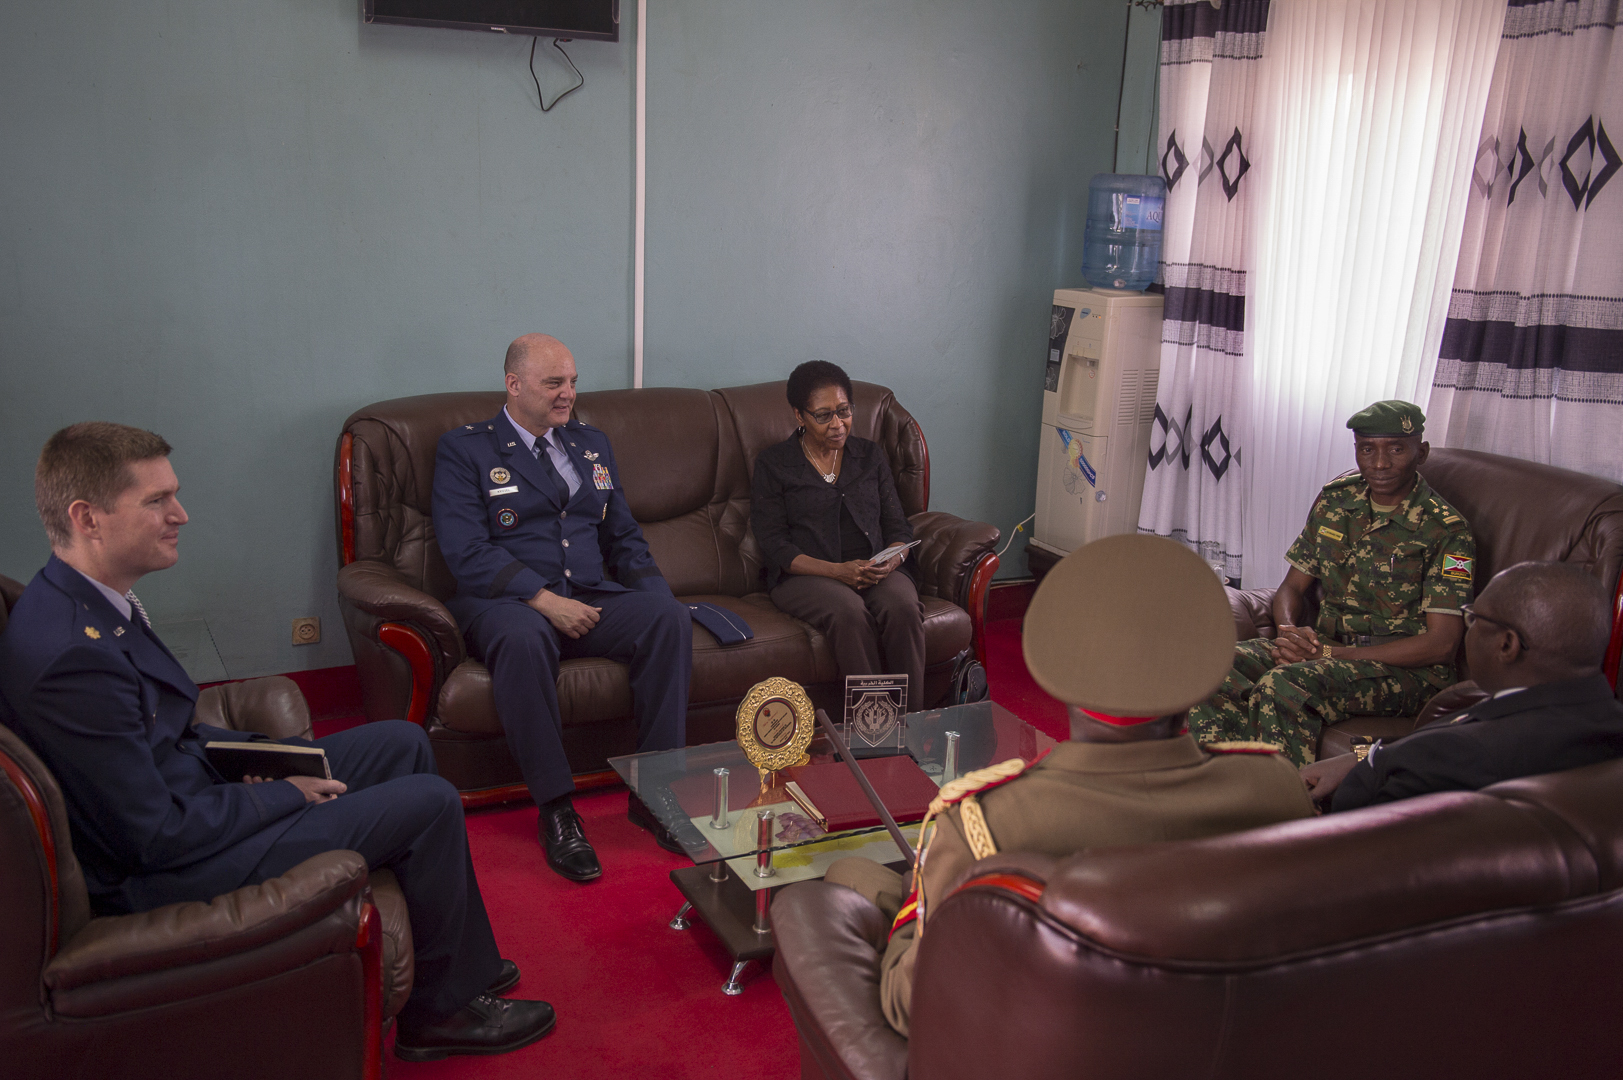 U.S. Amb. Eunice S. Reddick, the U.S. Charge d'affaires to Burundi, and former Ambassador to Gabon and Niger, and U.S. Air Force Brig. Gen. James R. Kriesel, deputy commanding general of Combined Joint Task Force-Horn of Africa, meet with leaders of the Burundi National Defence Force in Bujumbura, Burundi, July 19, 2019. Reddick and Kriesel attended the Burundi Senior Command and Staff College graduation of 28-students from Burundi, Uganda, Tanzania and Kenya. (U.S. Air Force Photo by Senior Airman Codie Trimble)